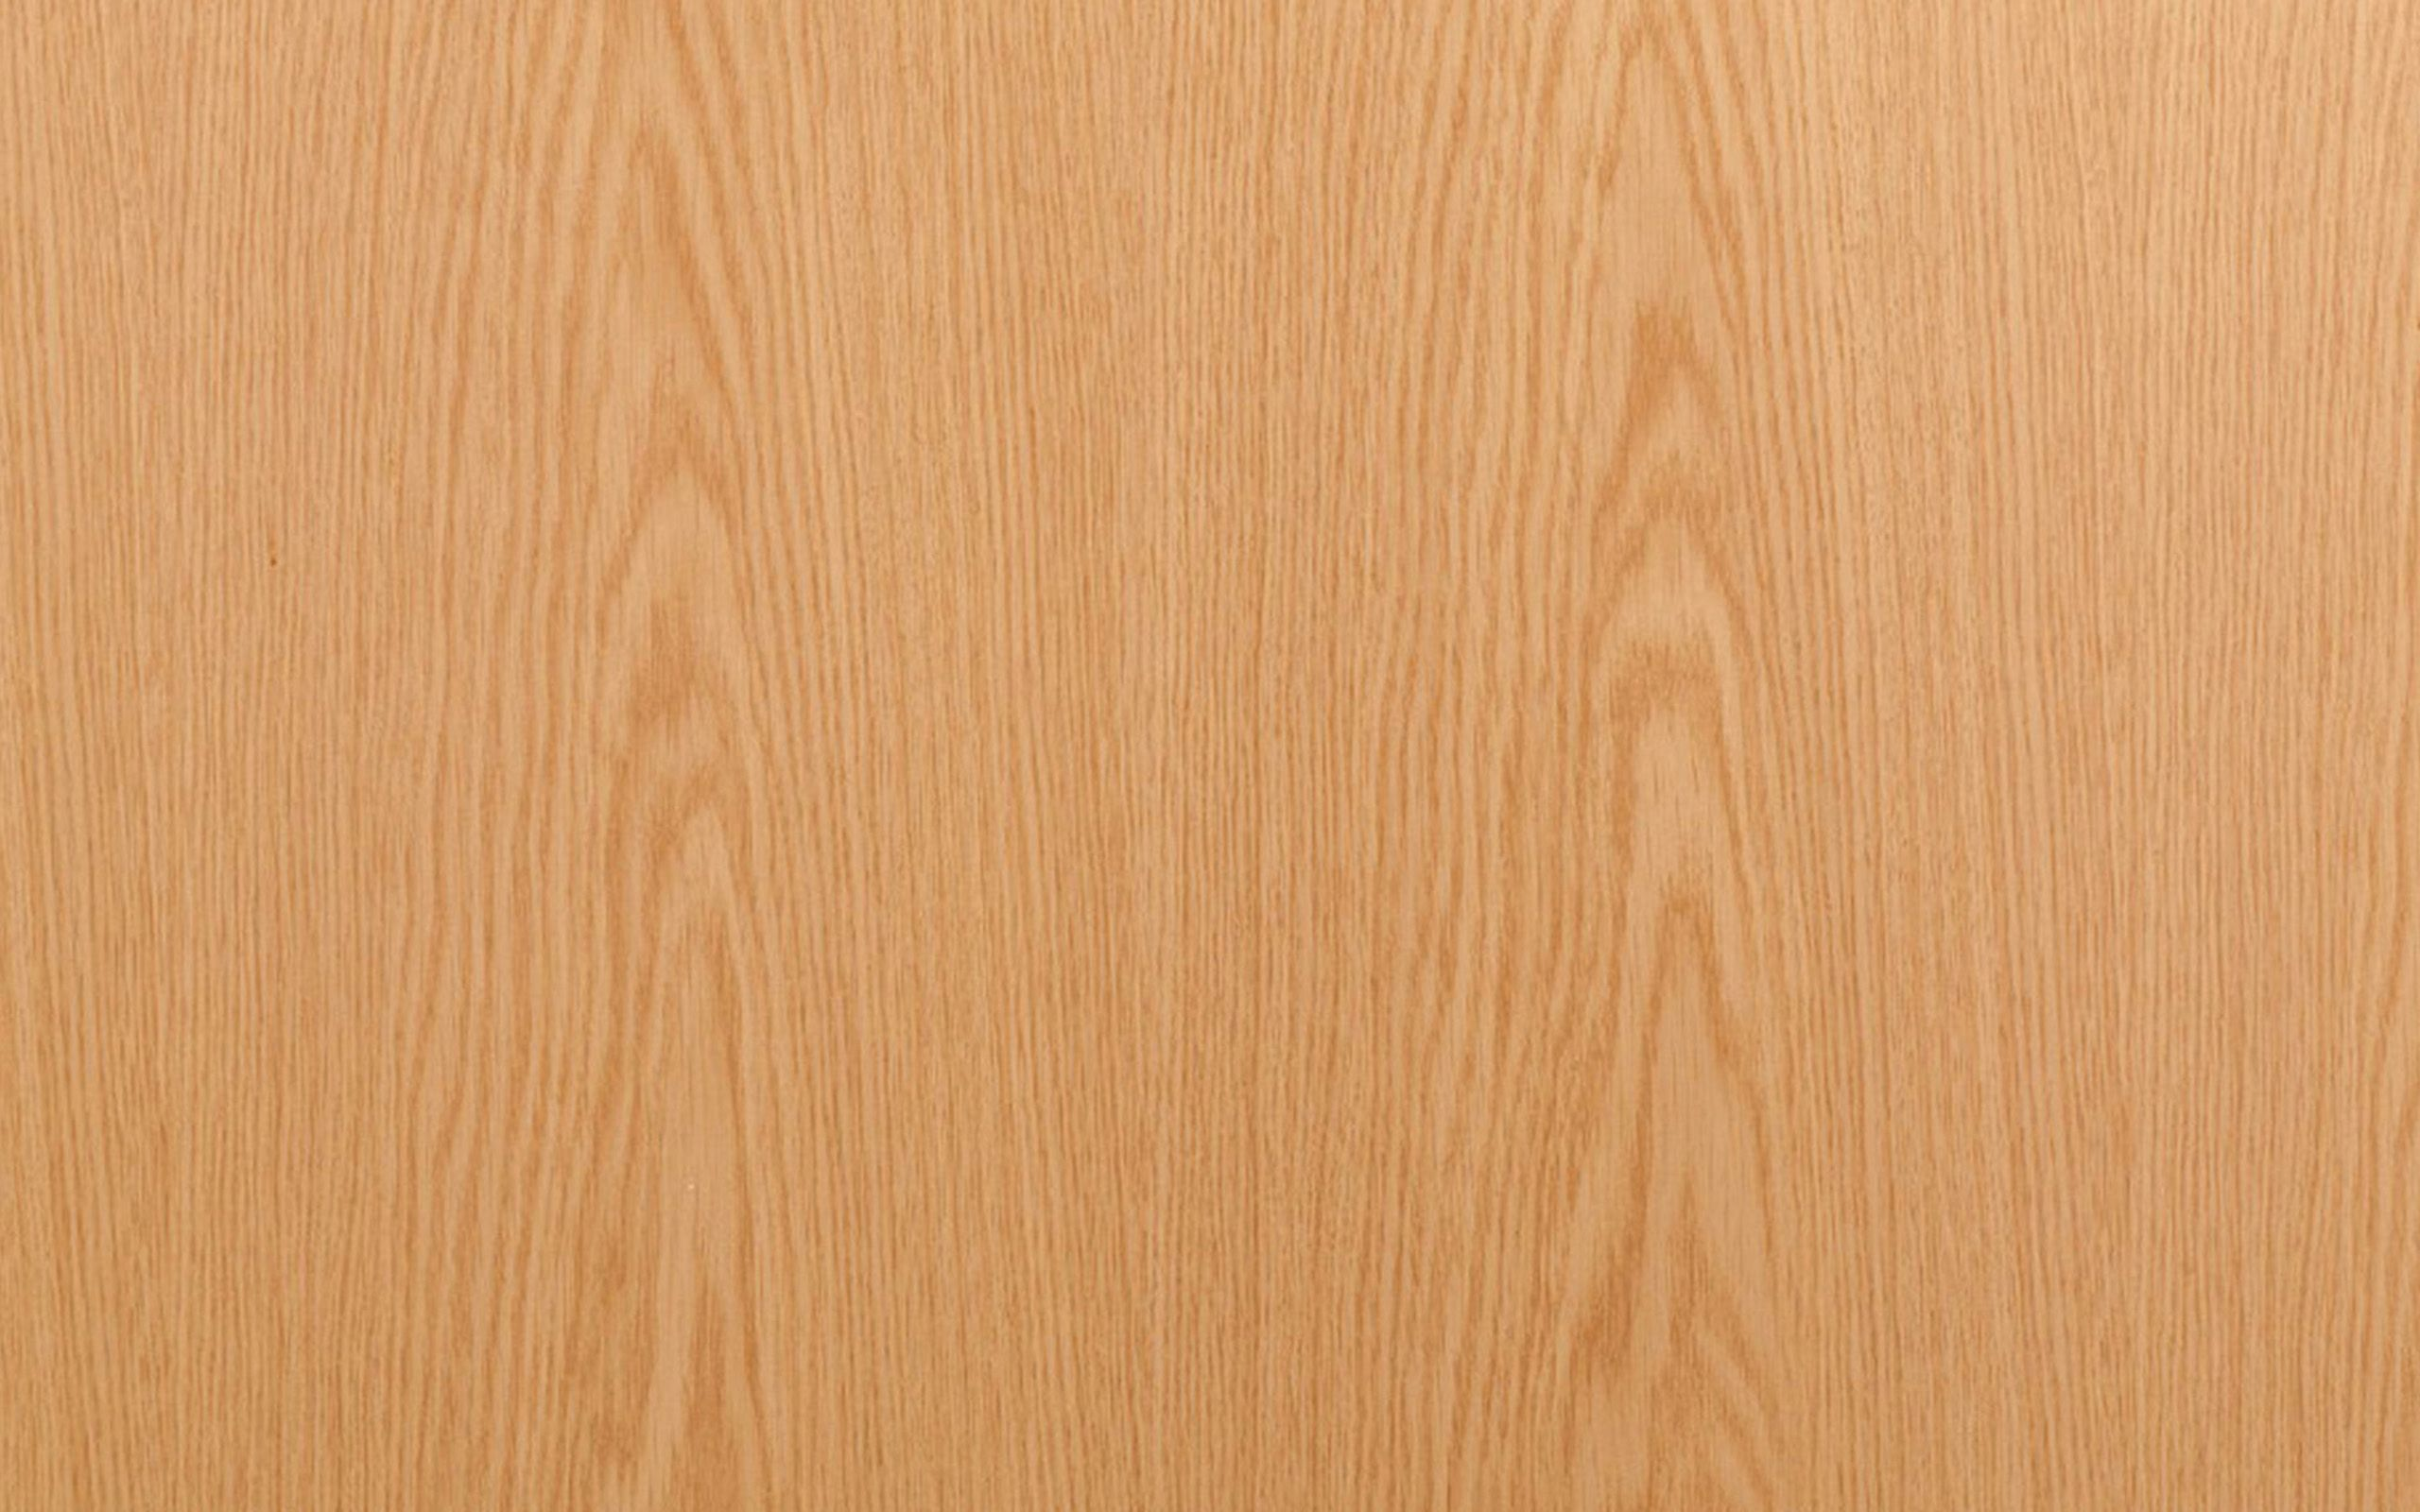 Wood texture wallpaperg 25601600 wizards office textures wood texture wallpaperg 25601600 voltagebd Choice Image